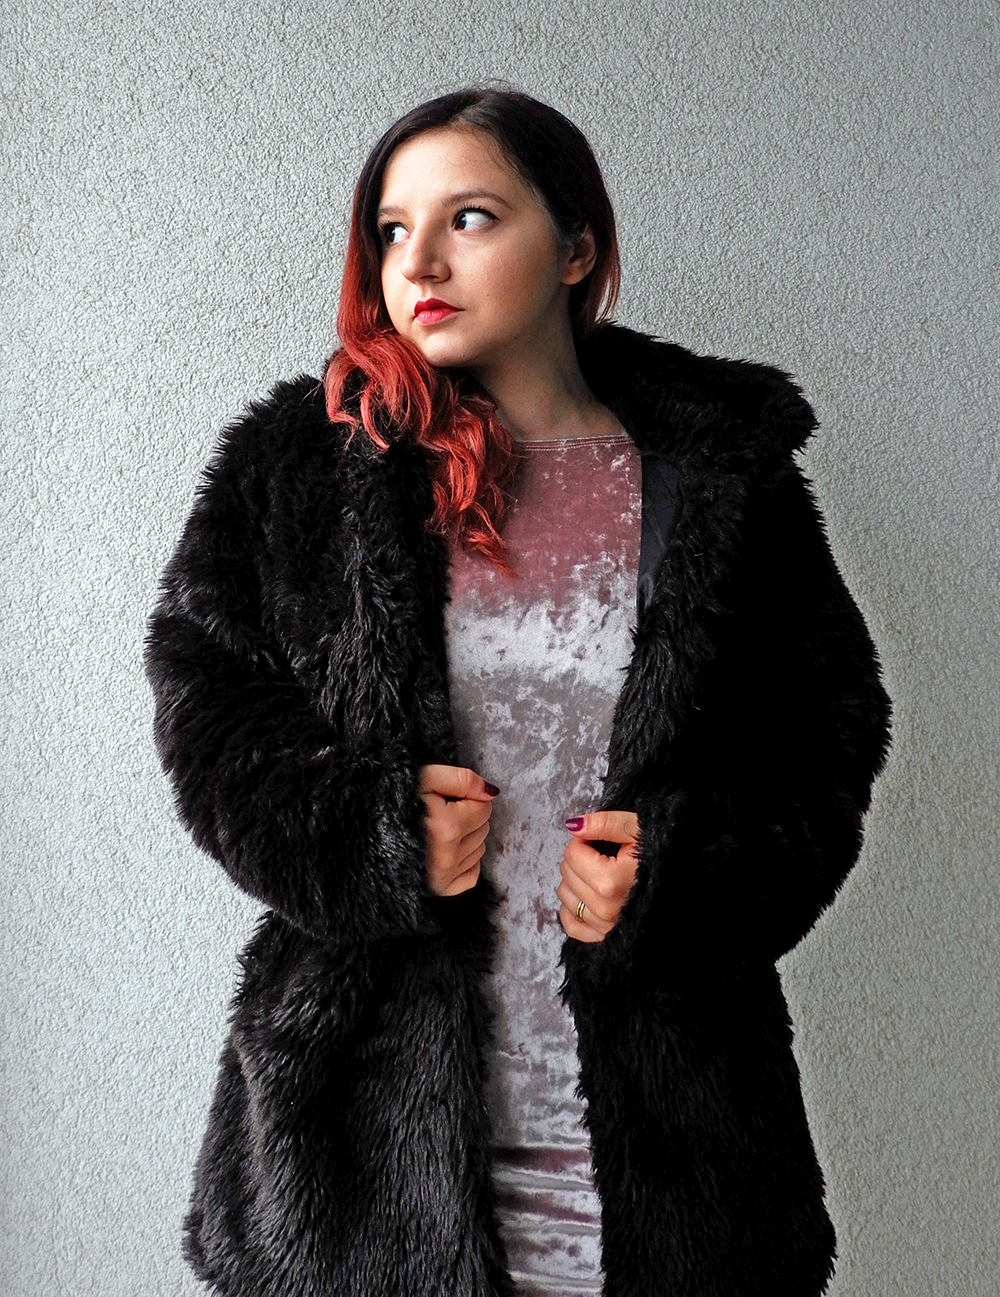 Cute New Year's Outfits for Cold Weather - velvet dress and faux fur coat